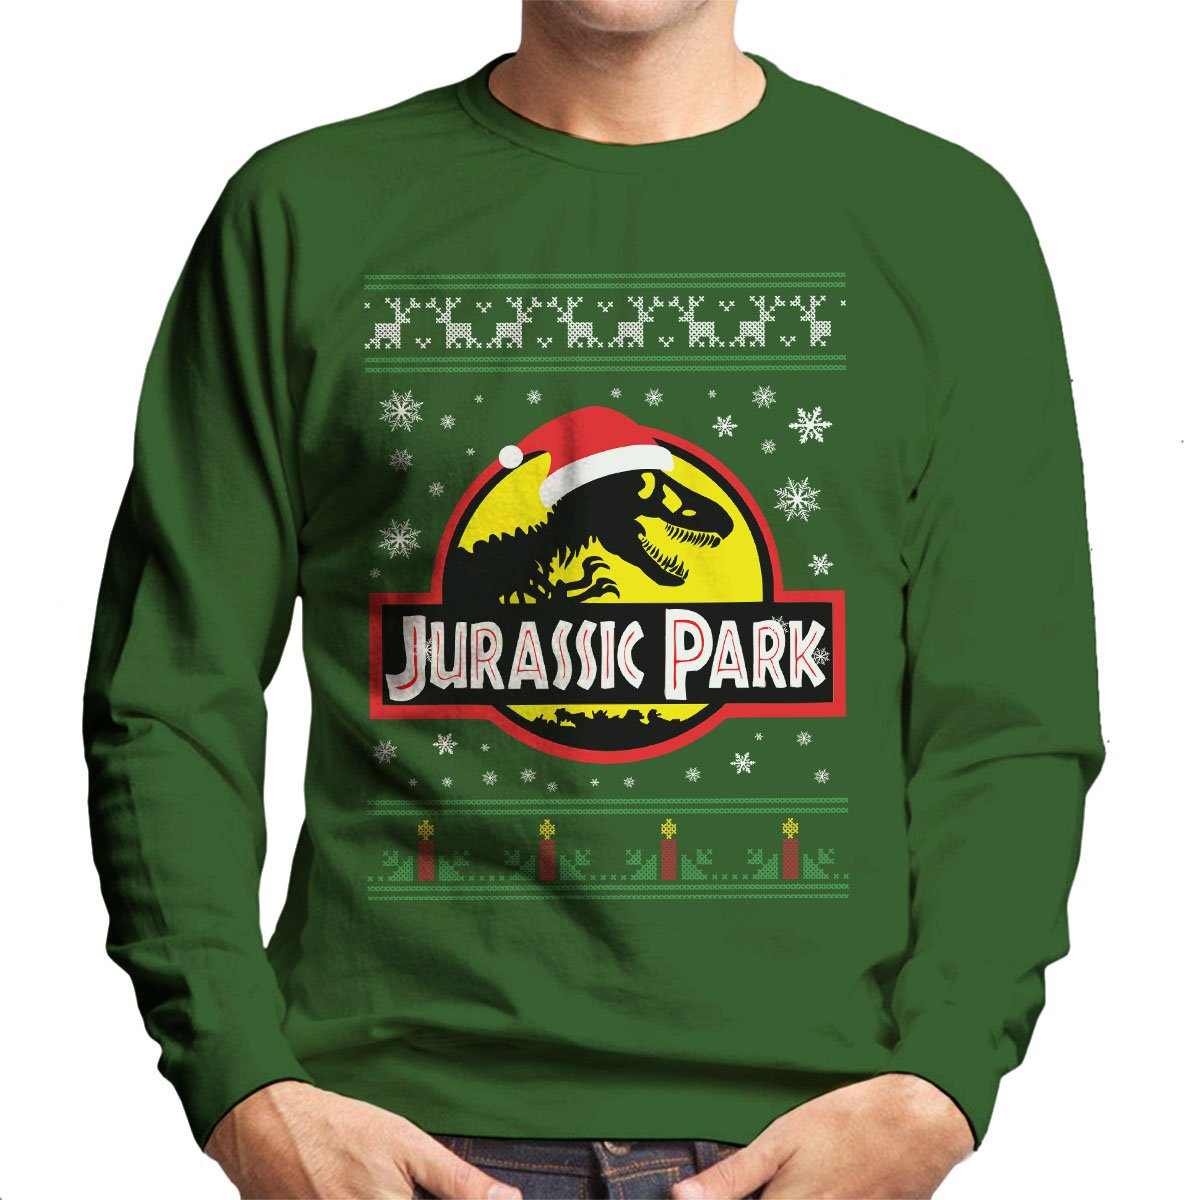 Jurassic Park Christmas Knit Men's Sweatshirt